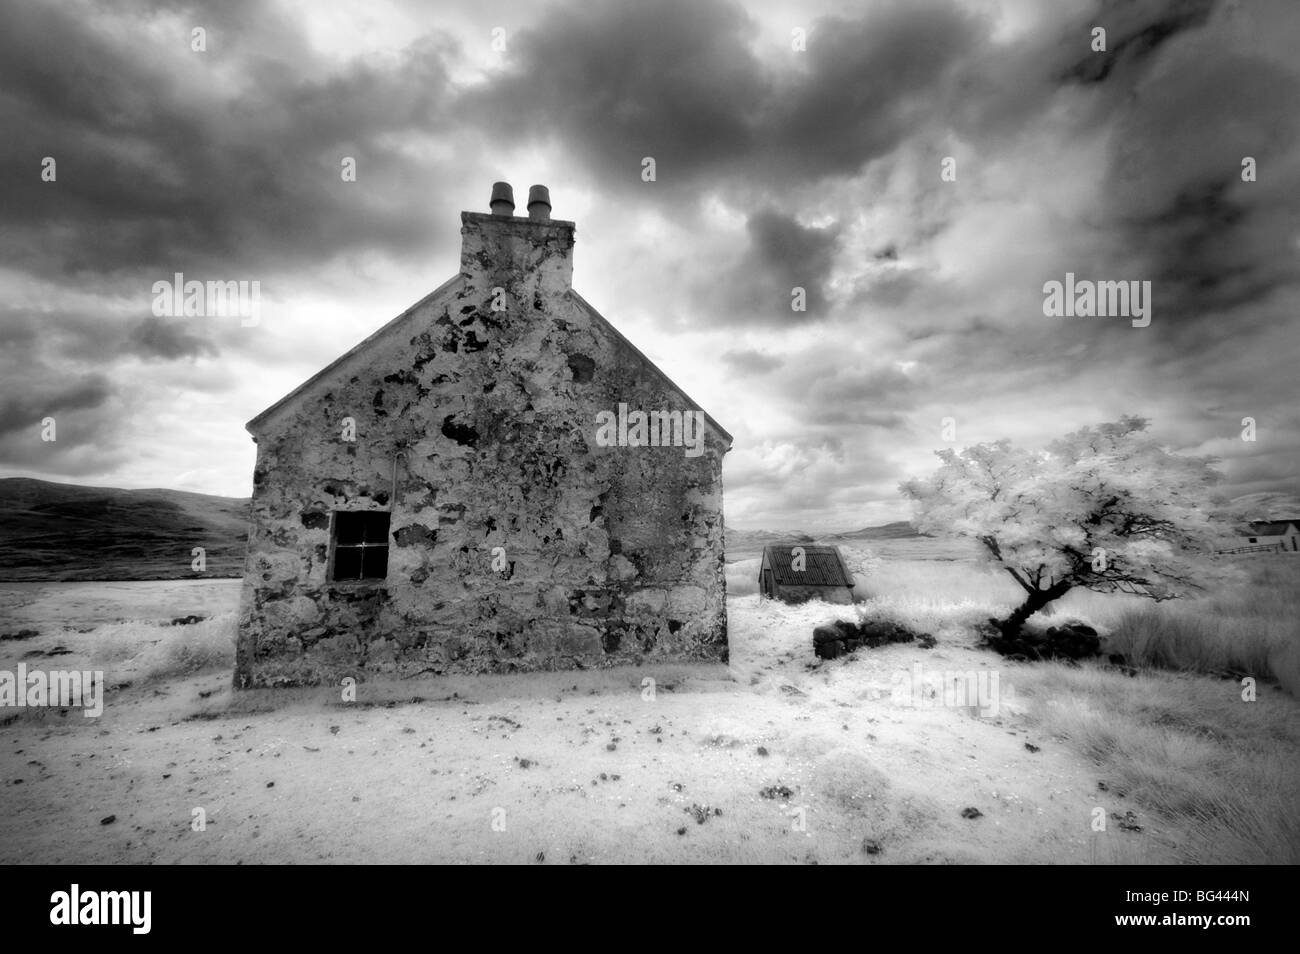 Infrared image of a derelict farmhouse near Arivruach, Isle of Lewis, Hebrides, Scotland, UK - Stock Image